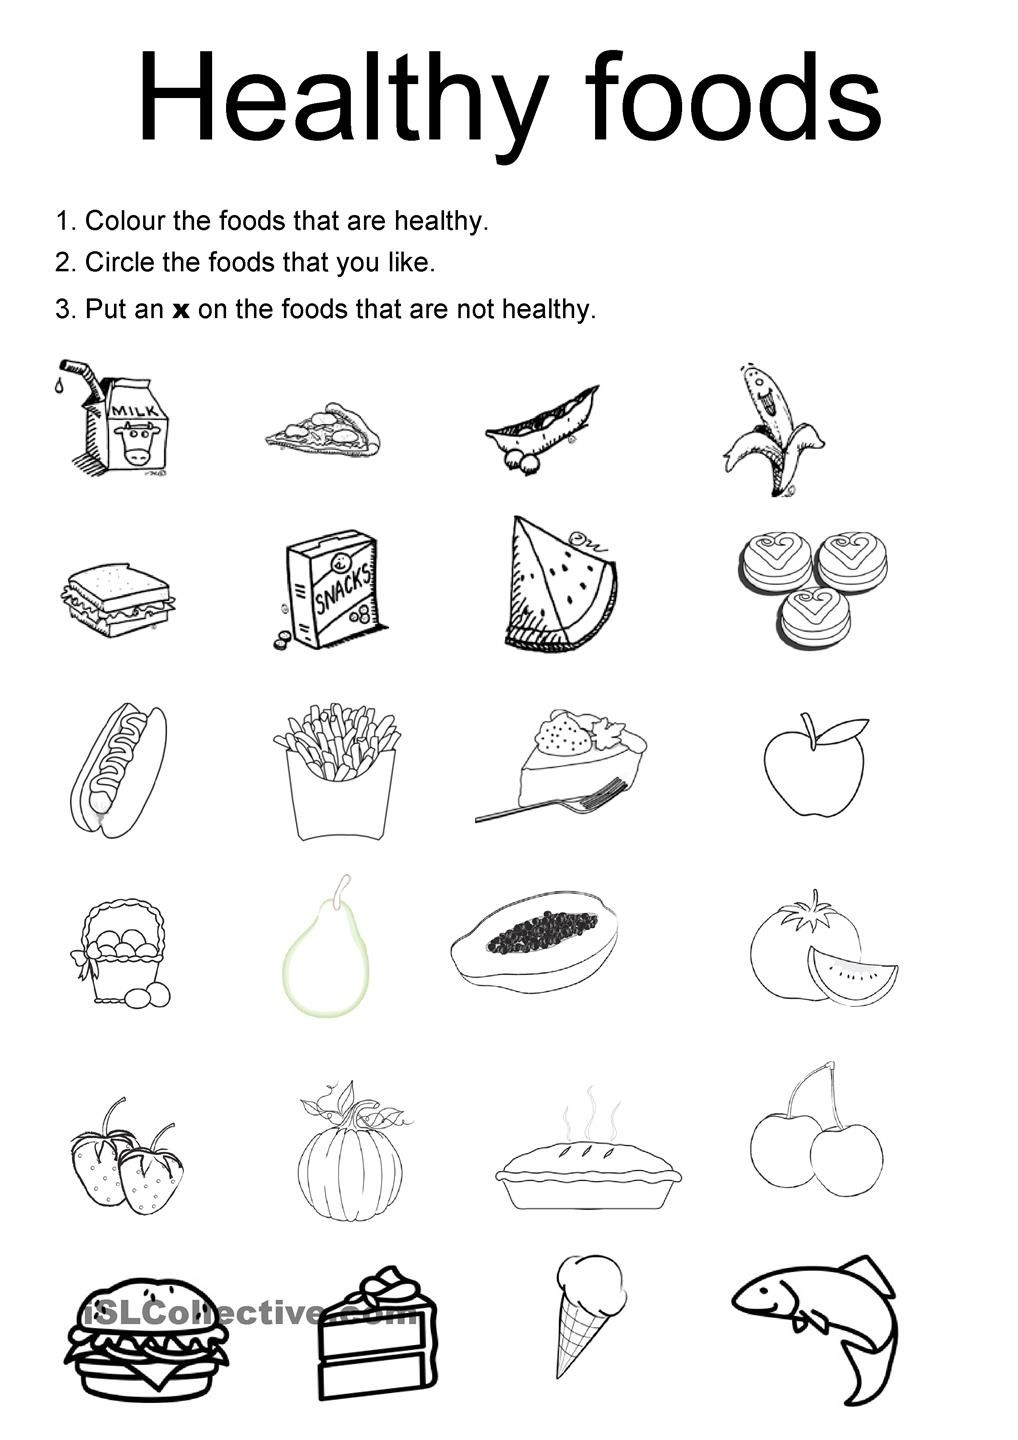 Worksheets Health And Nutrition Worksheets healthy foods for kids worksheets good galleries family health galleries